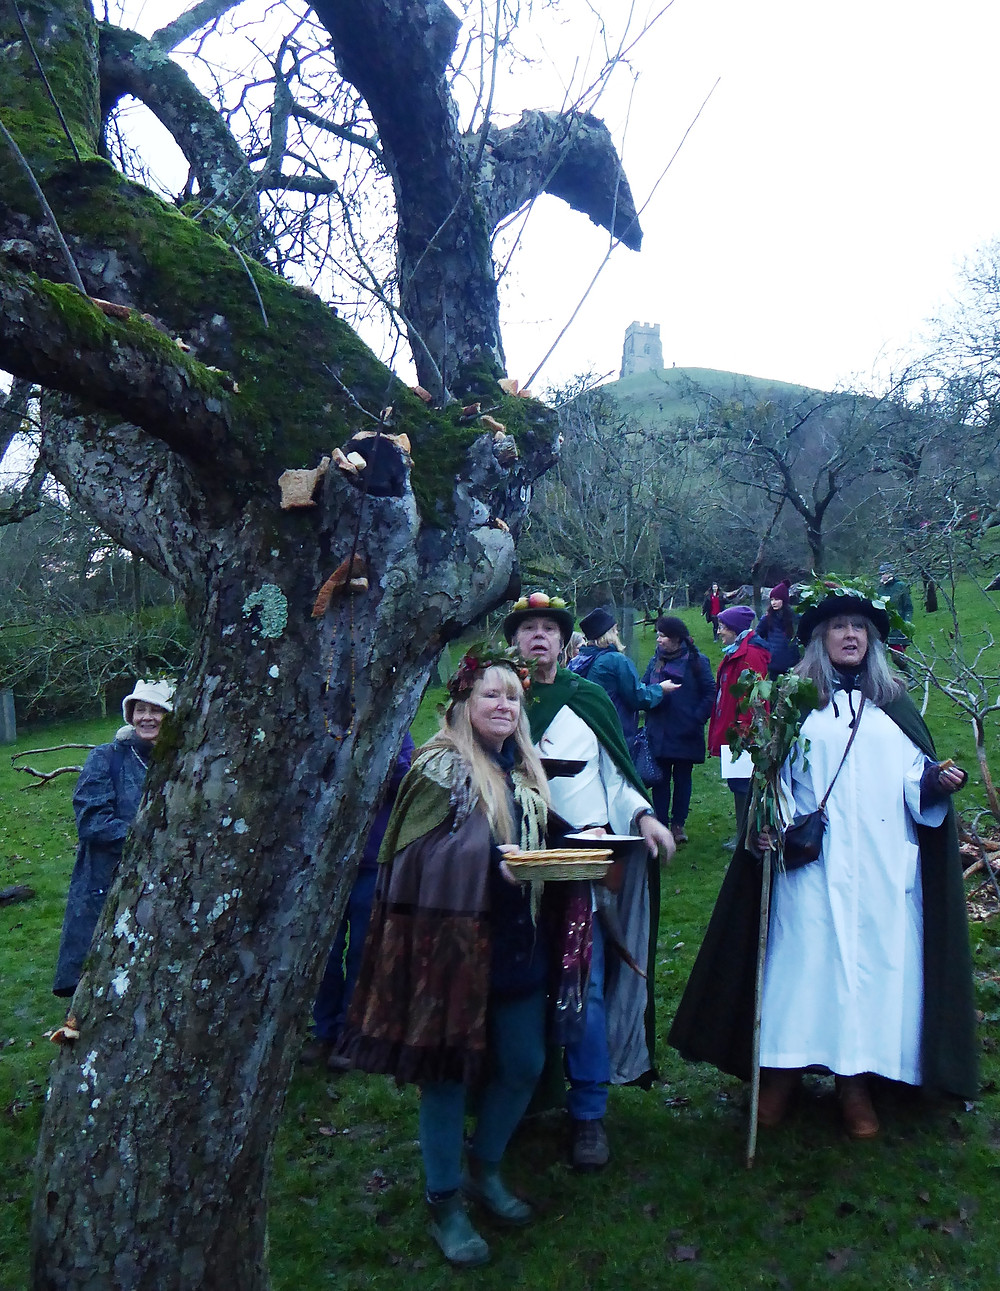 Wassailing festival under the iconic Glastonbury Tor